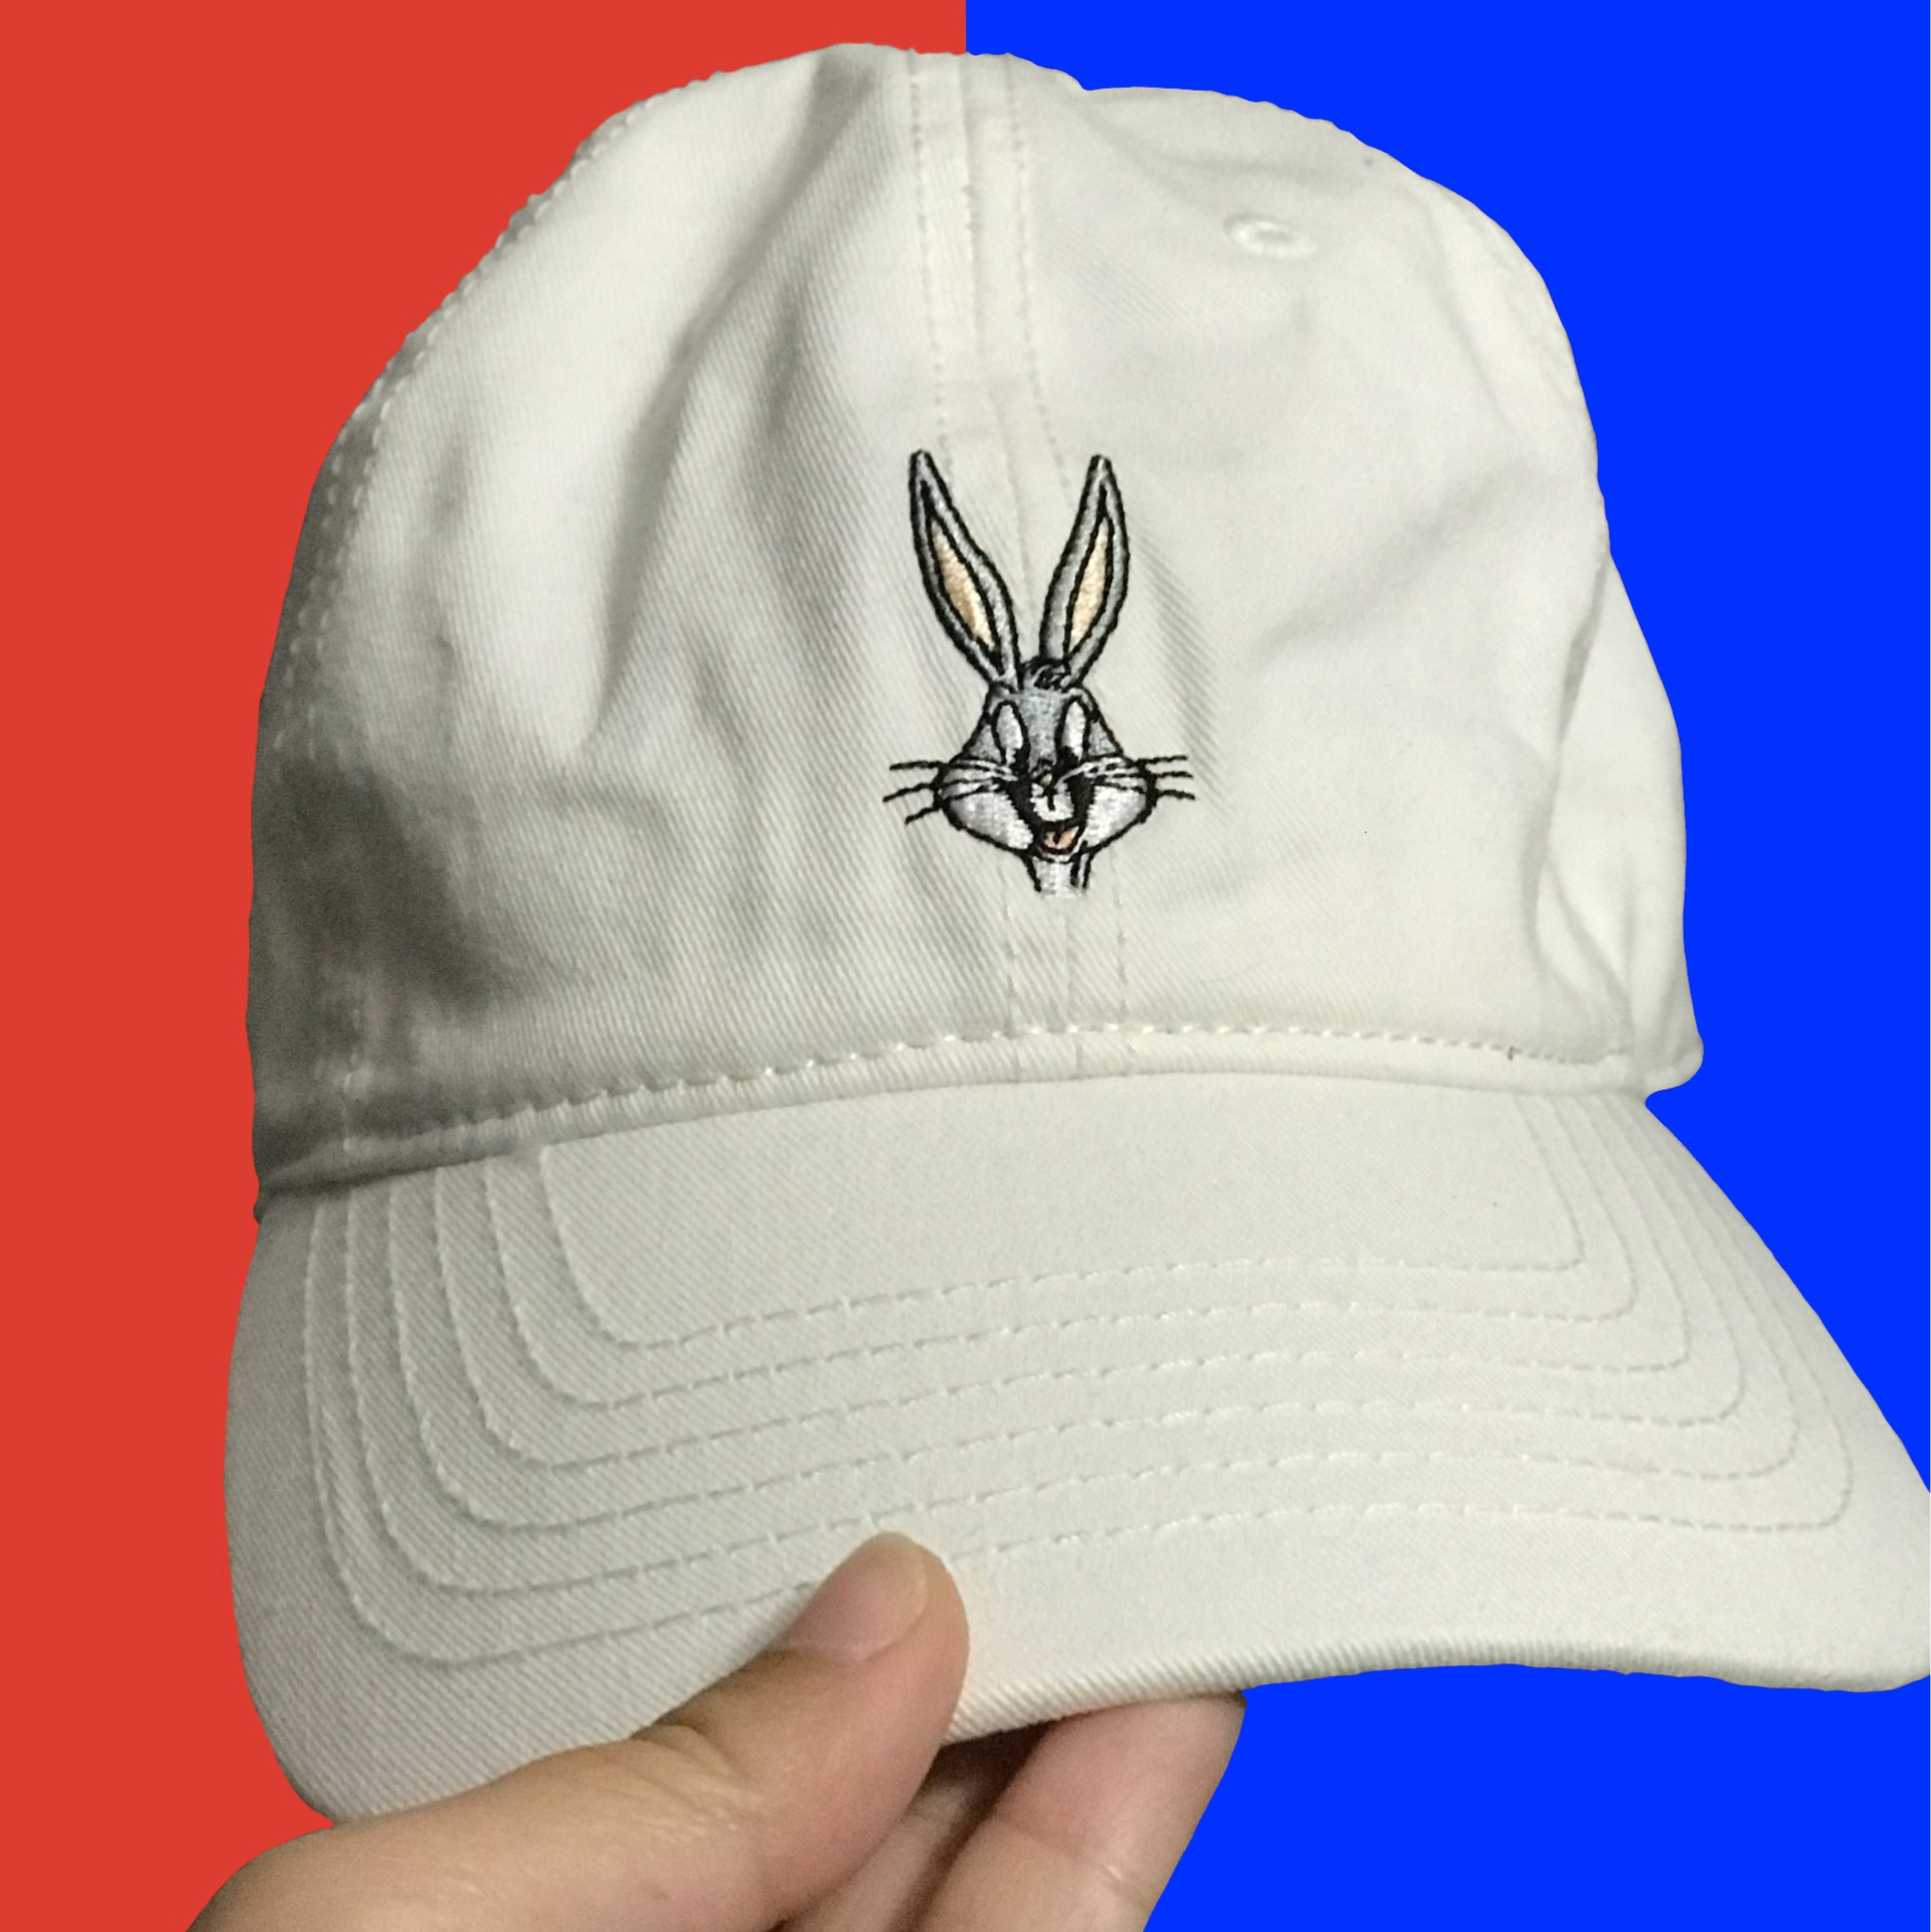 b7db6a3d5 White Forever 21 Embroidered Bugs Bunny Dad Cap Cute... - Depop